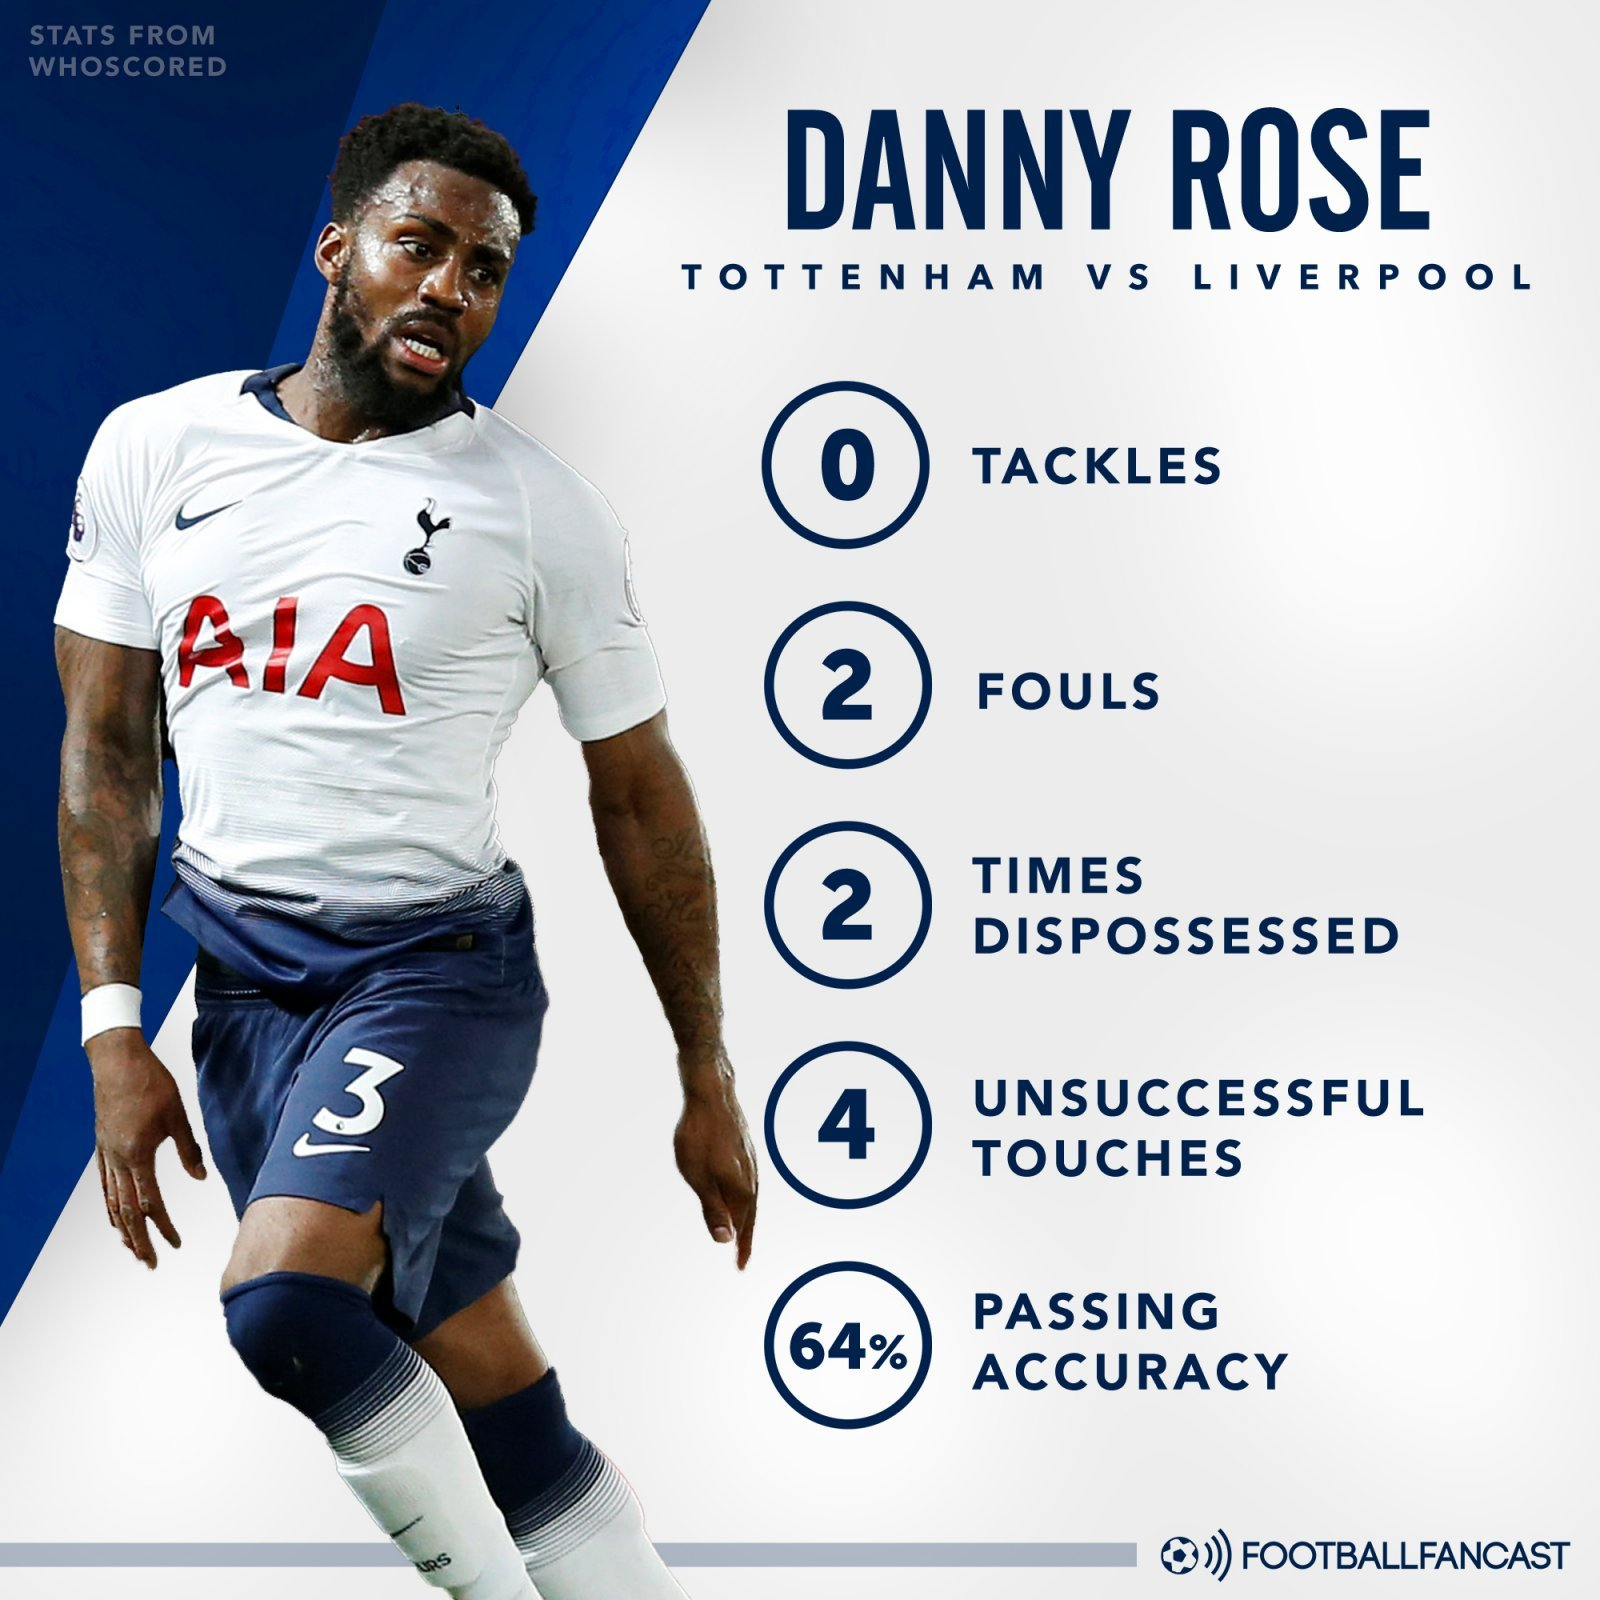 Danny Rose's stats from Tottenham's defeat to Liverpool